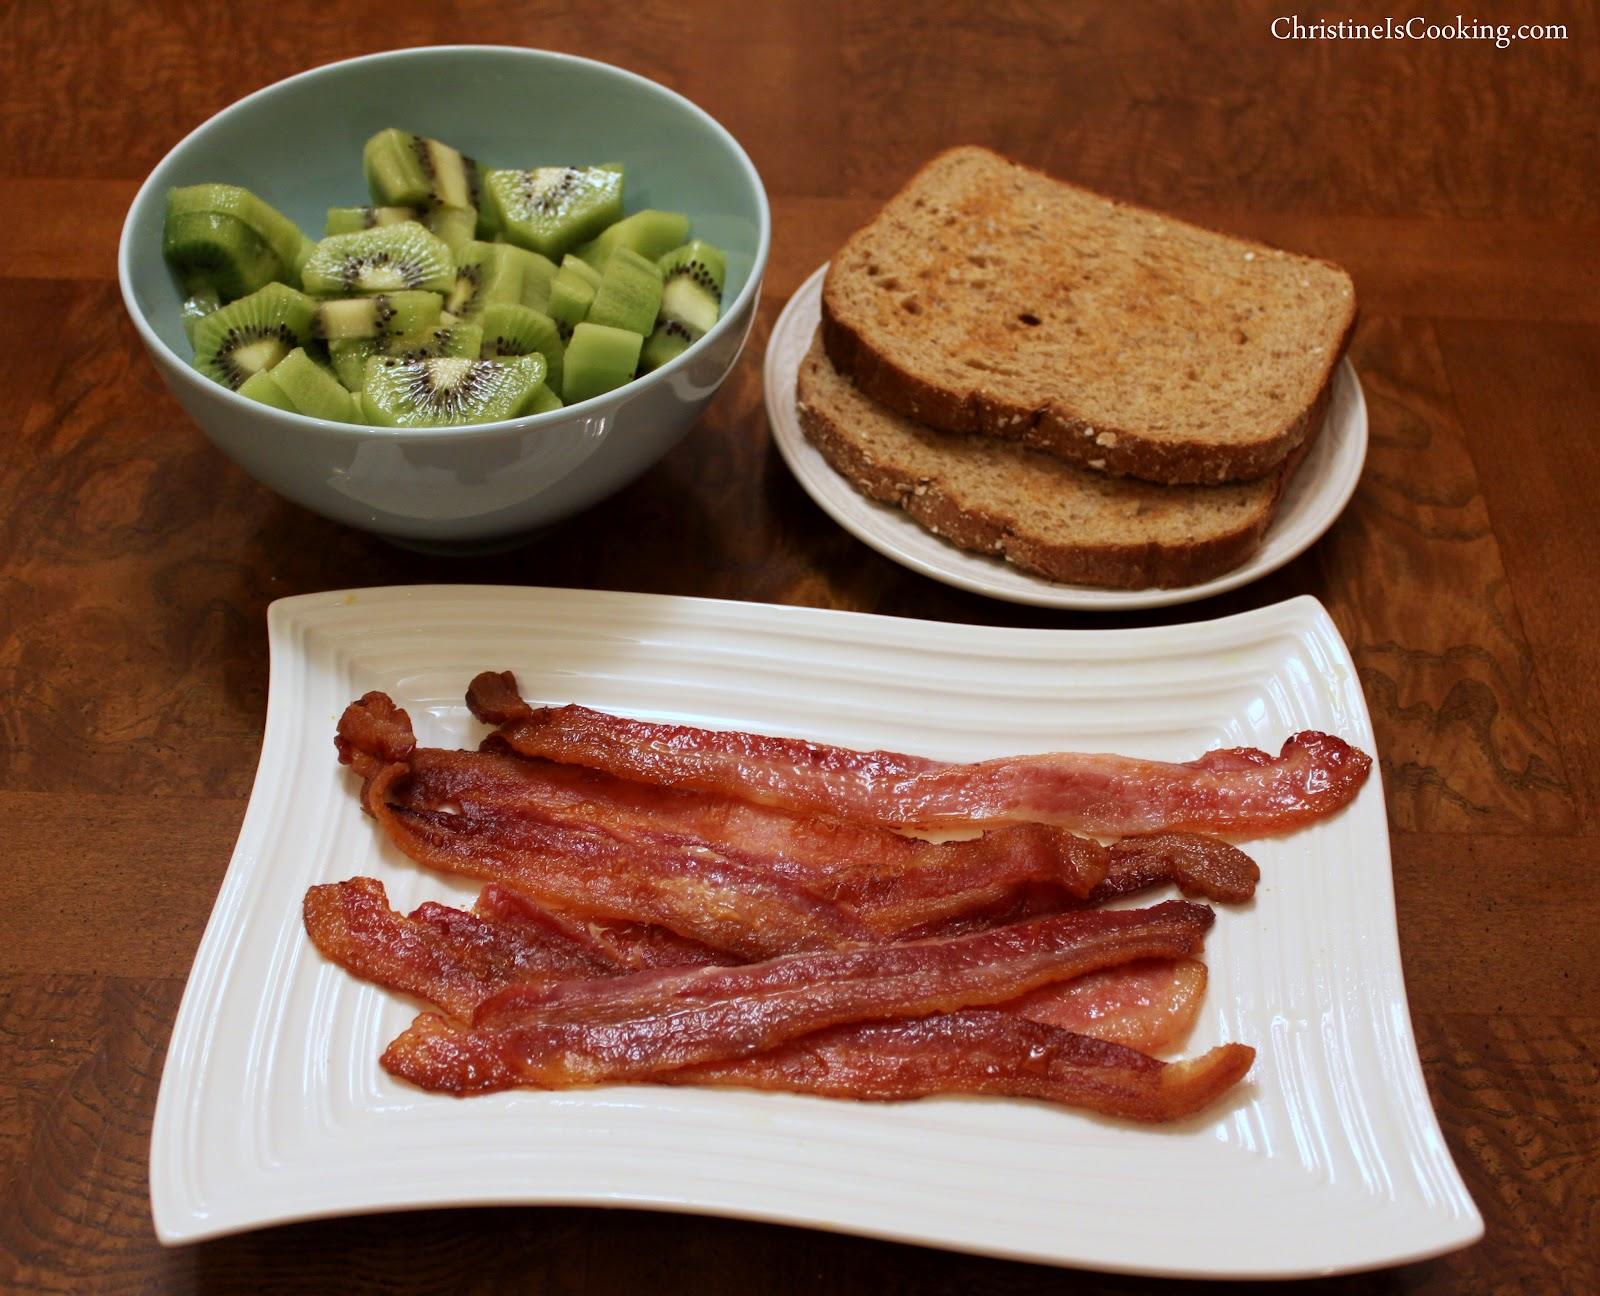 Most Chefs Agree That Cooking Bacon In An Oven Is A Better Cook Method Pared To Frying Bacon In A Pan Cooking Bacon In The Oven Yields More  Uniform